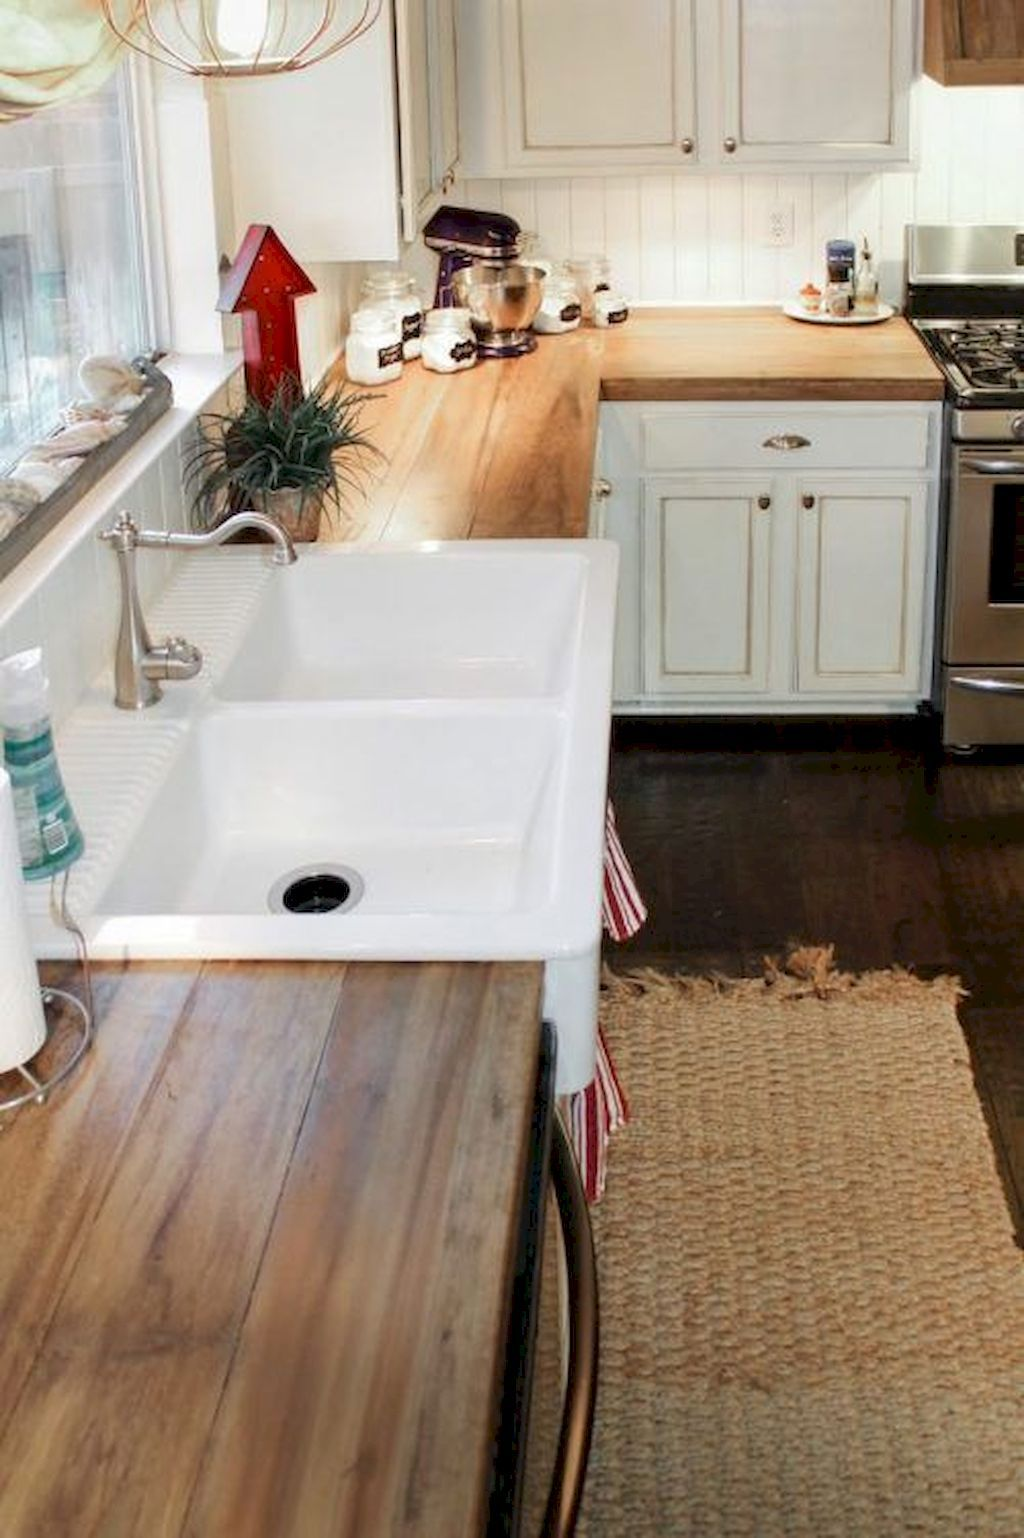 Awesome 55 Best Rustic Kitchen Sink Farmhouse Style Ideas Https Homearchite Com 2018 01 10 55 Reclaimed Wood Kitchen Wood Kitchen Counters Diy Wood Counters